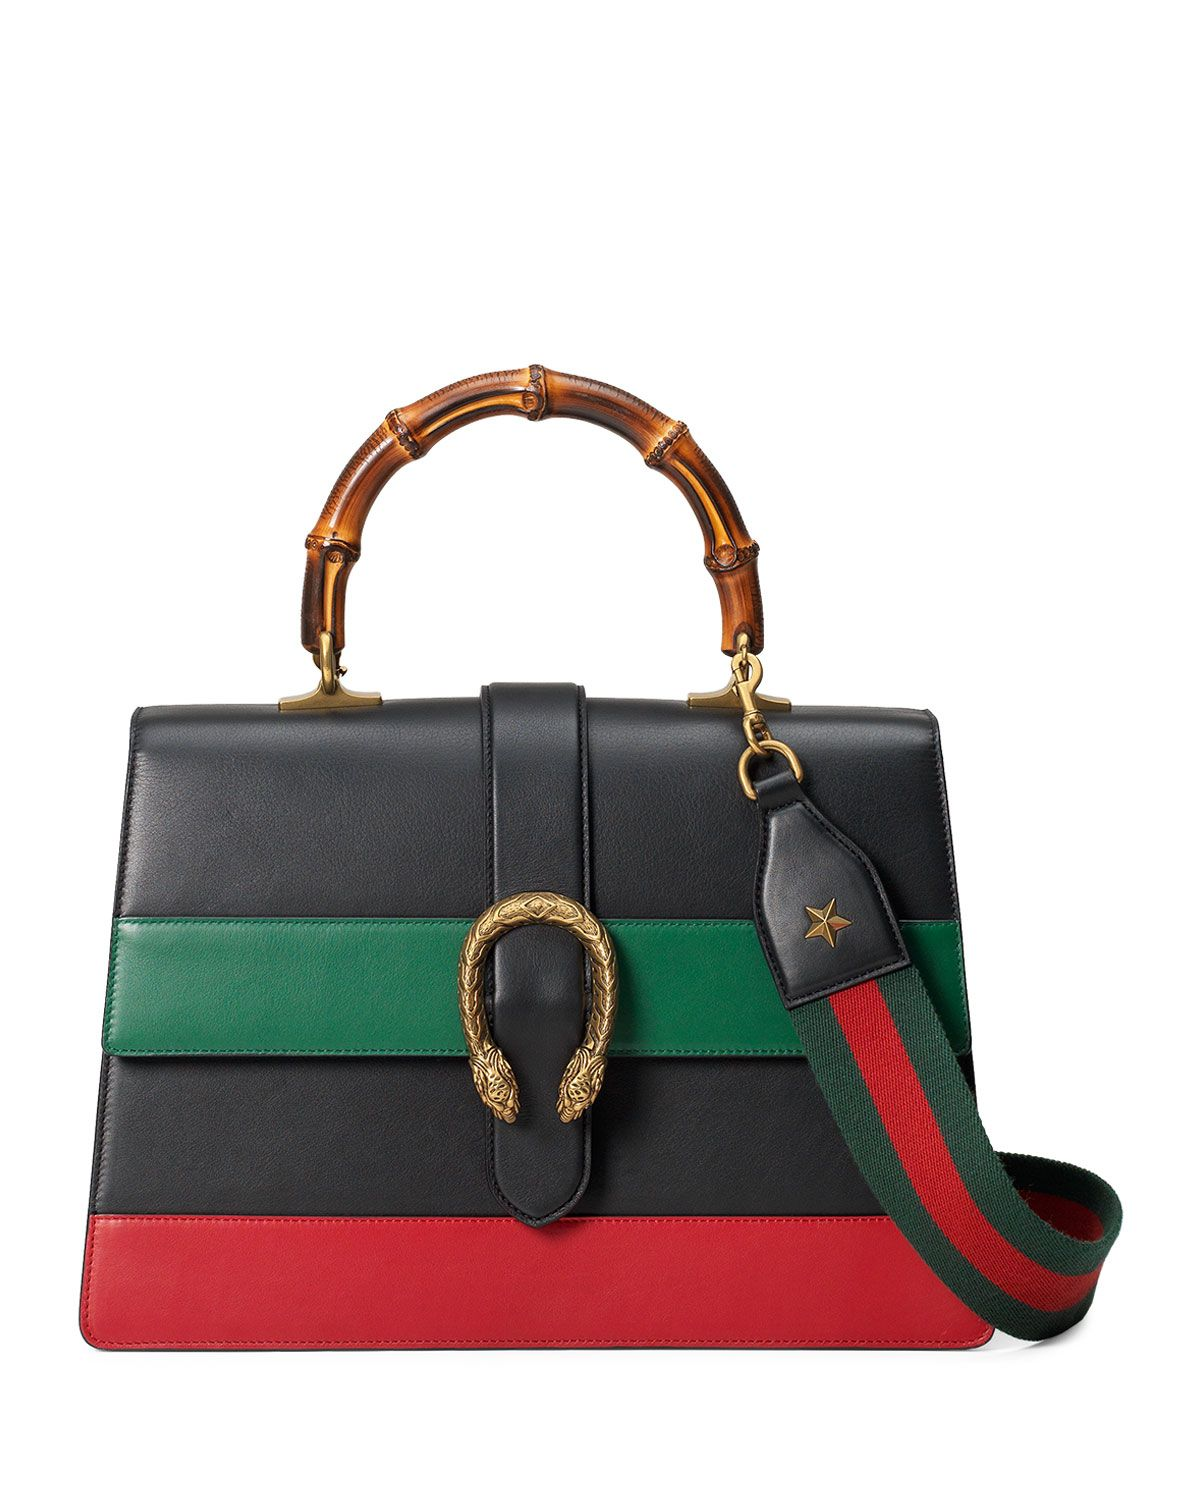 44f0e1b26cfa Gucci Dionysus Striped Bamboo Top-Handle Bag | *Handbags, Wallets ...